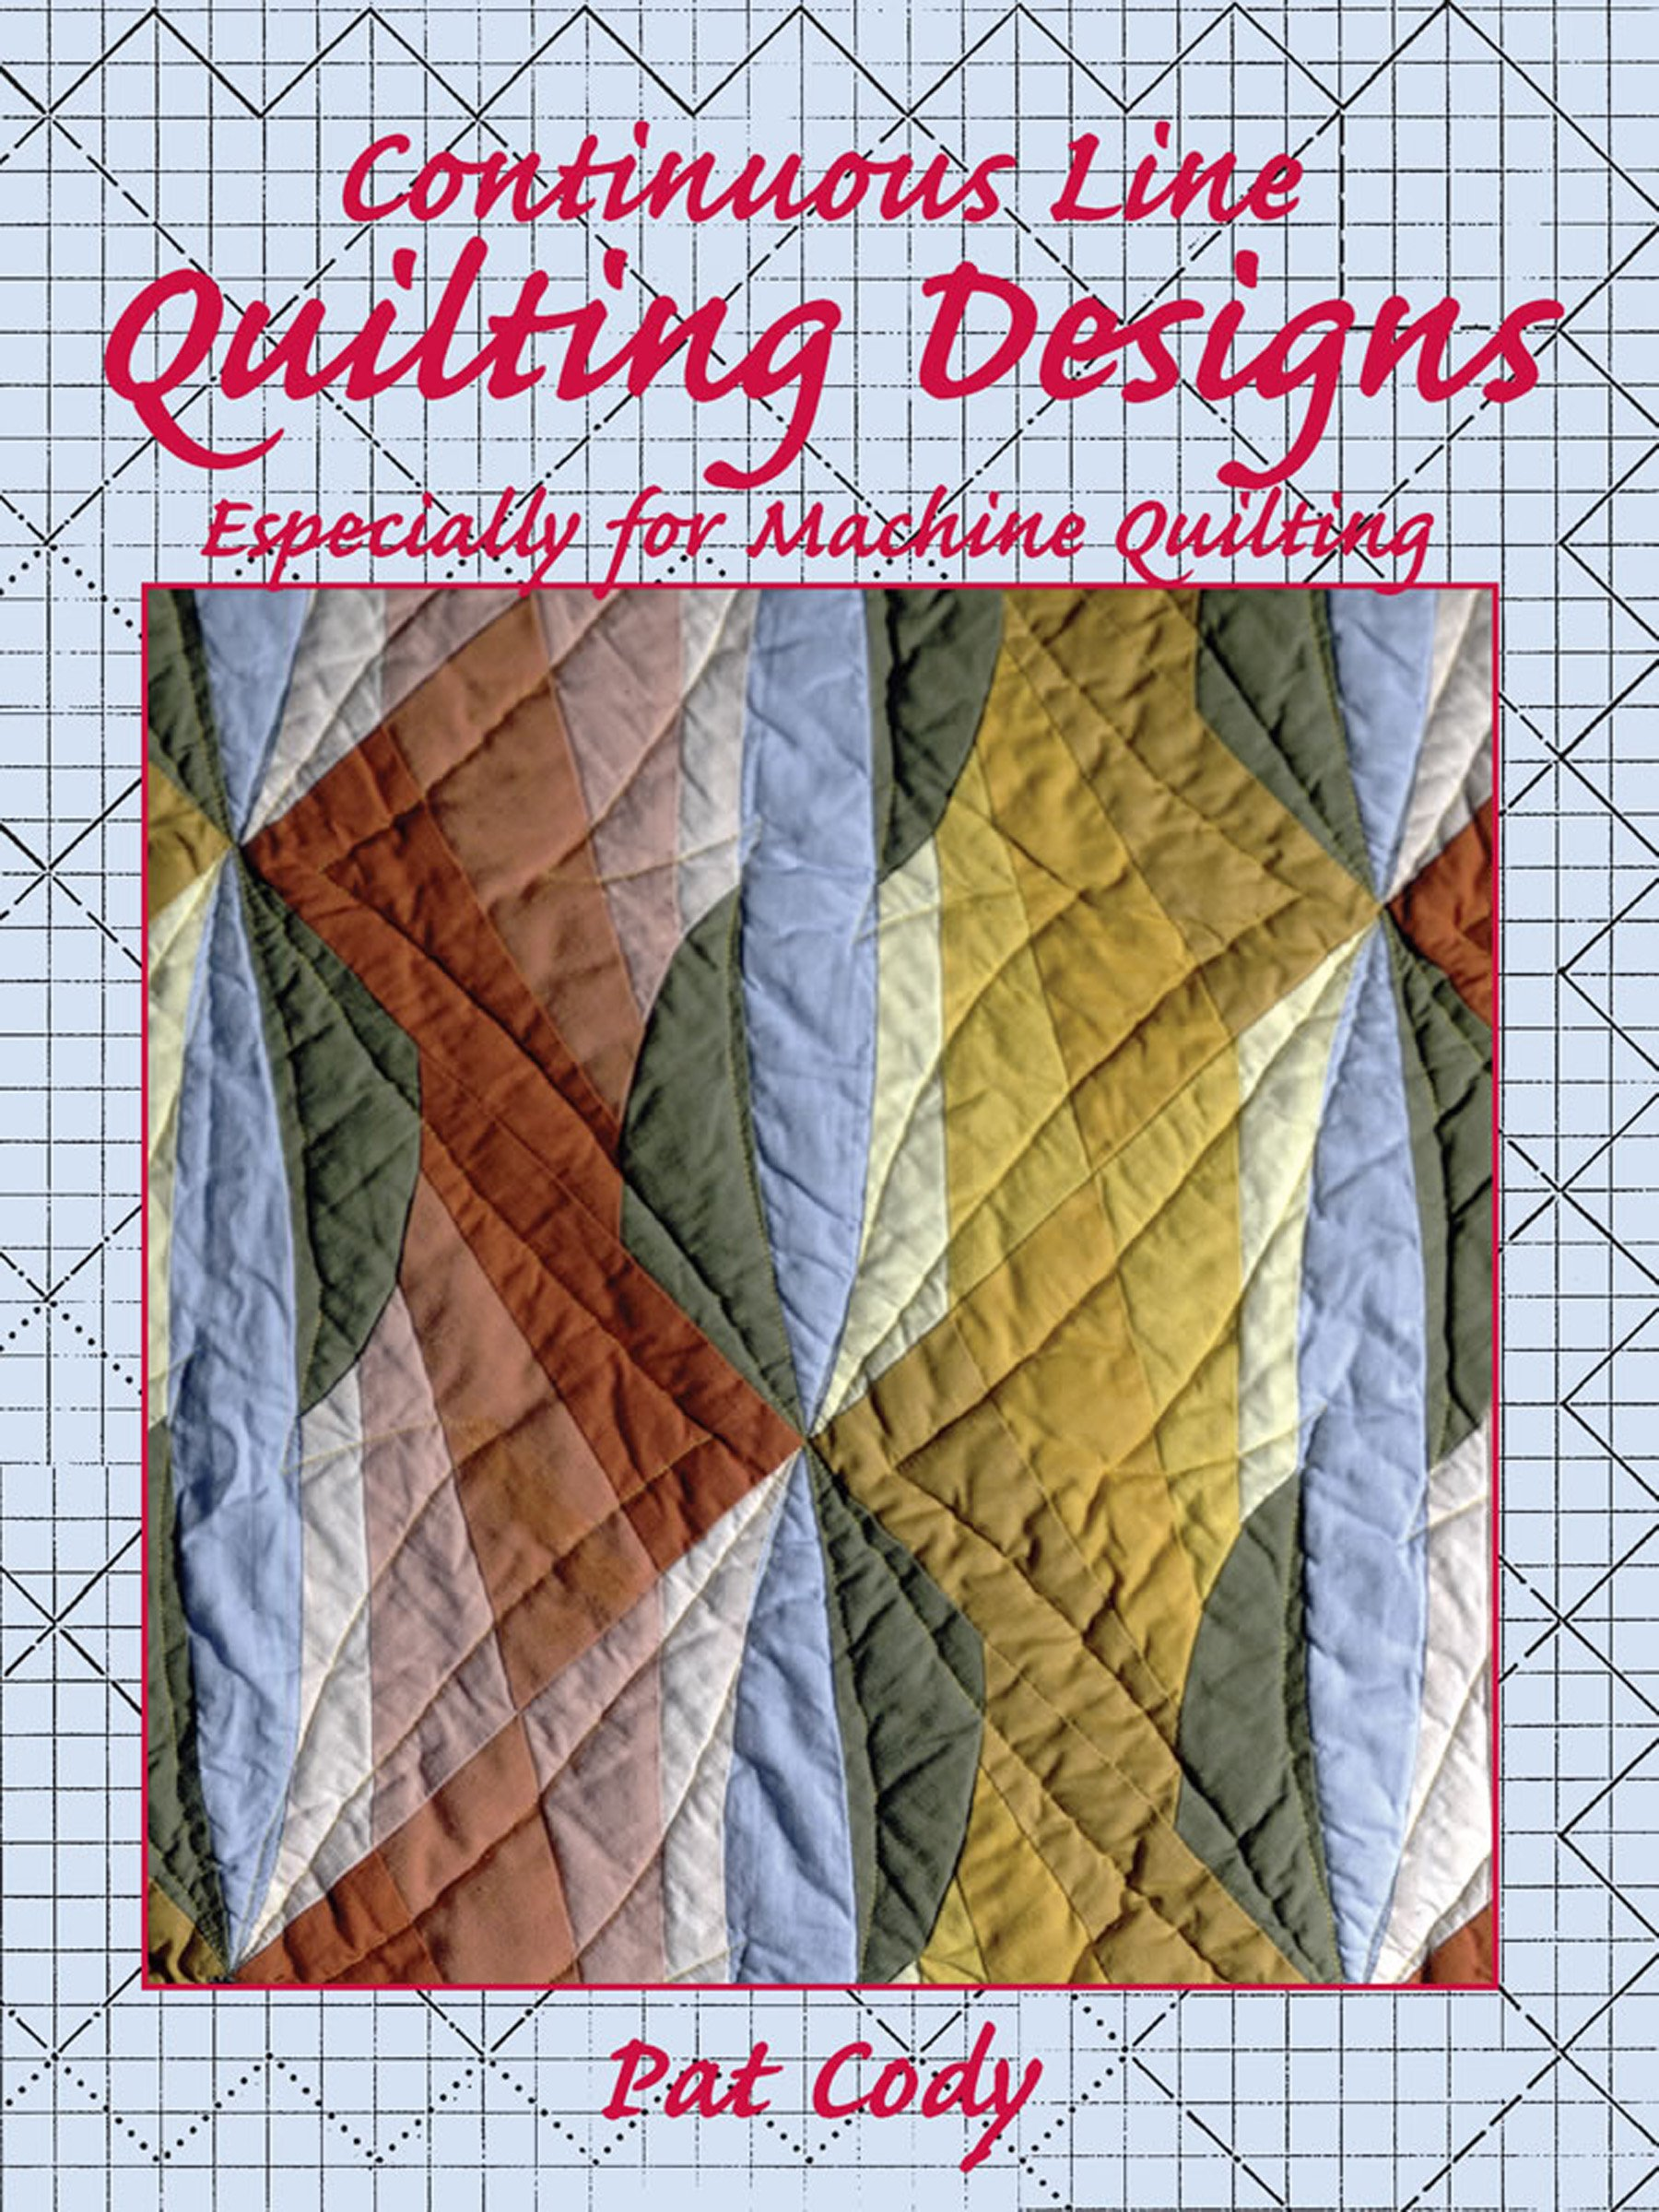 Continuous Line Quilting Patterns Free Downloads New Design Ideas